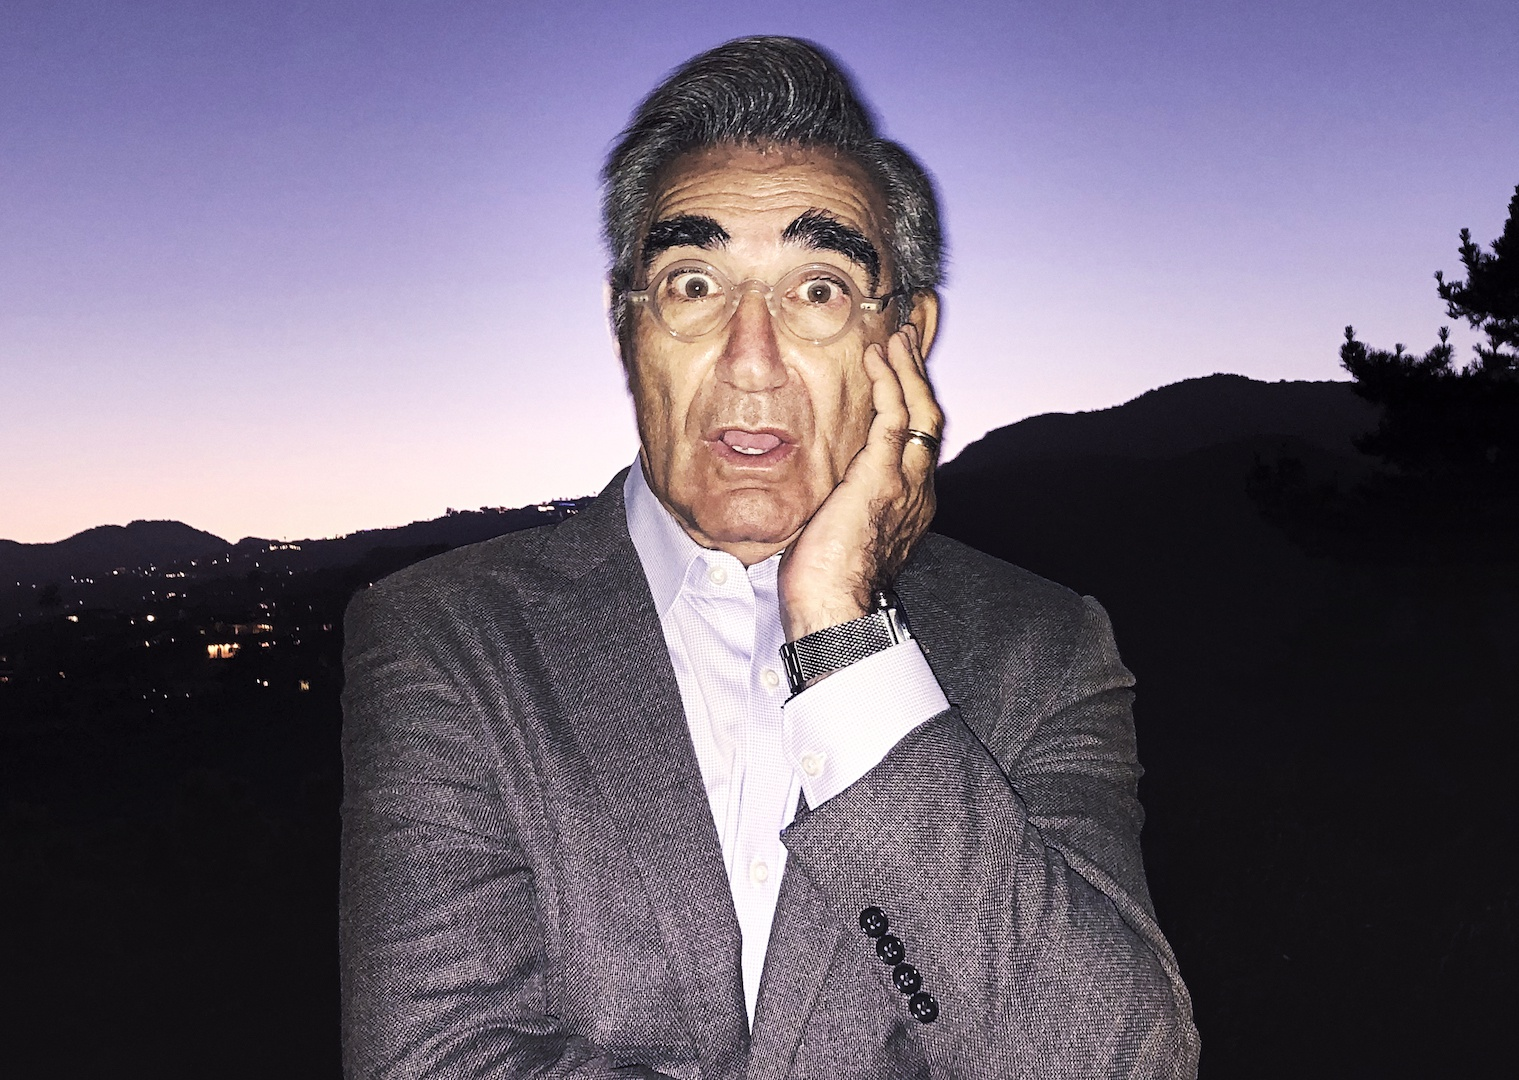 Eugene Levy Reveals the Rules of Comedy That Brought Him, Finally, to 'Schitt's Creek'